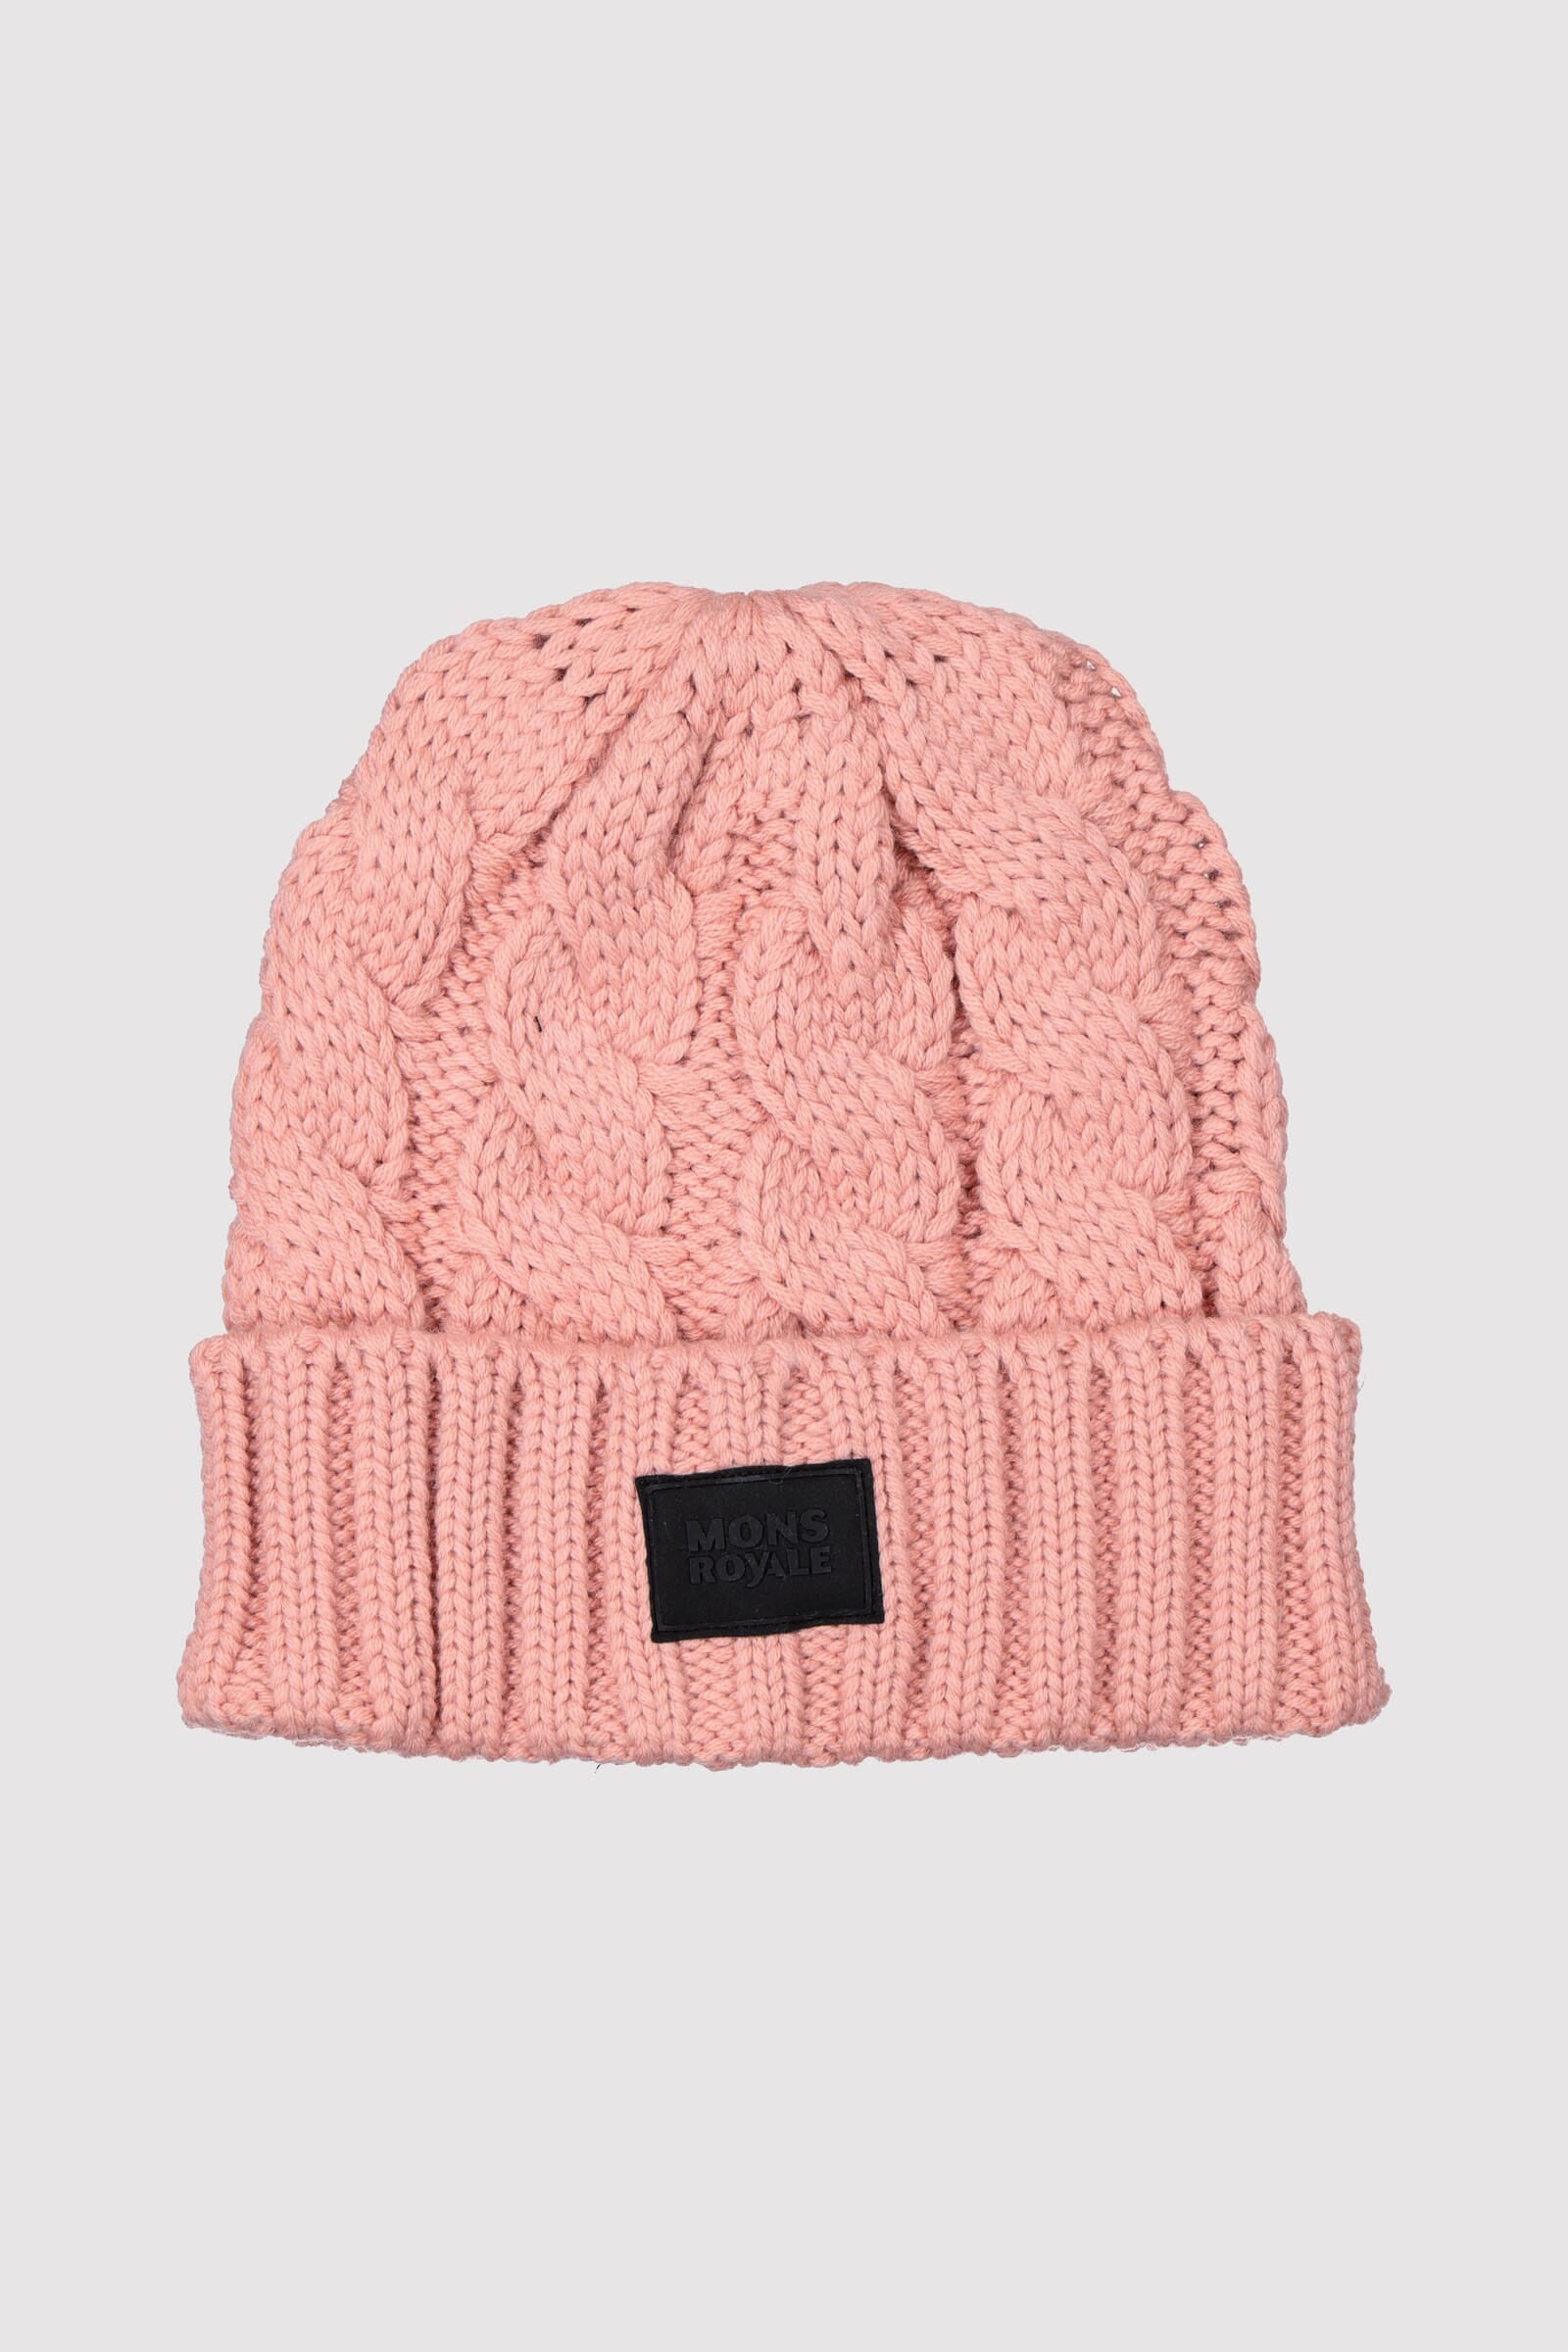 Rope Tow Beanie - Dusty Pink